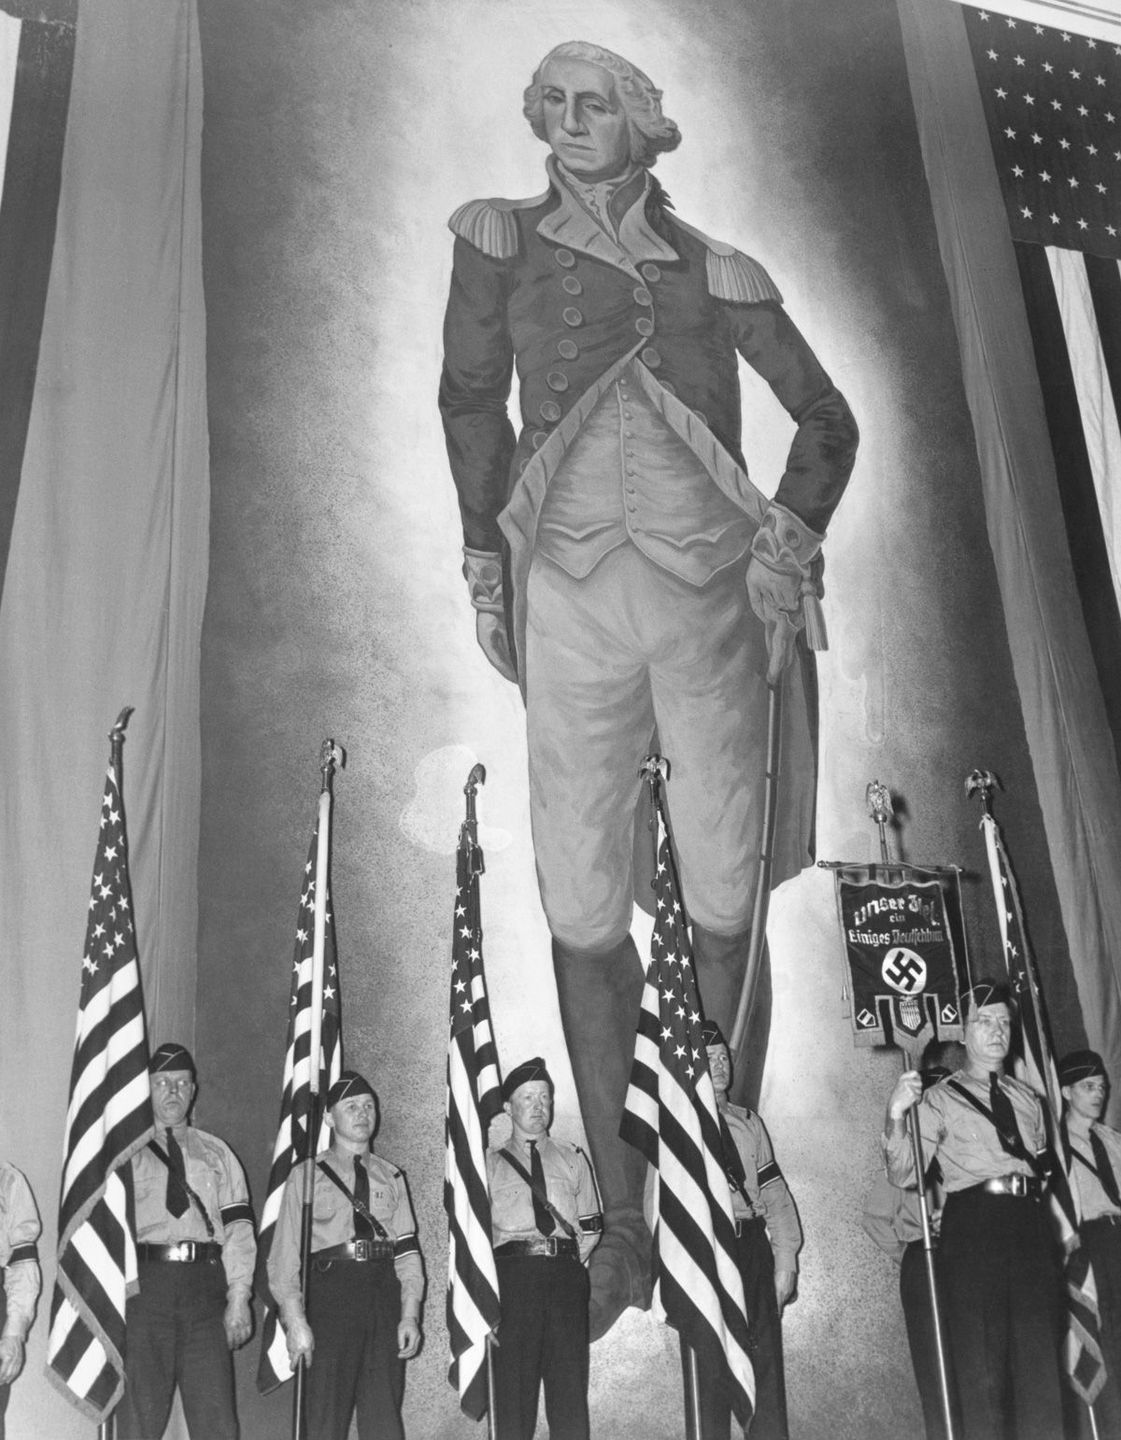 Nazi guards in front of a huge portrait of George Washington.